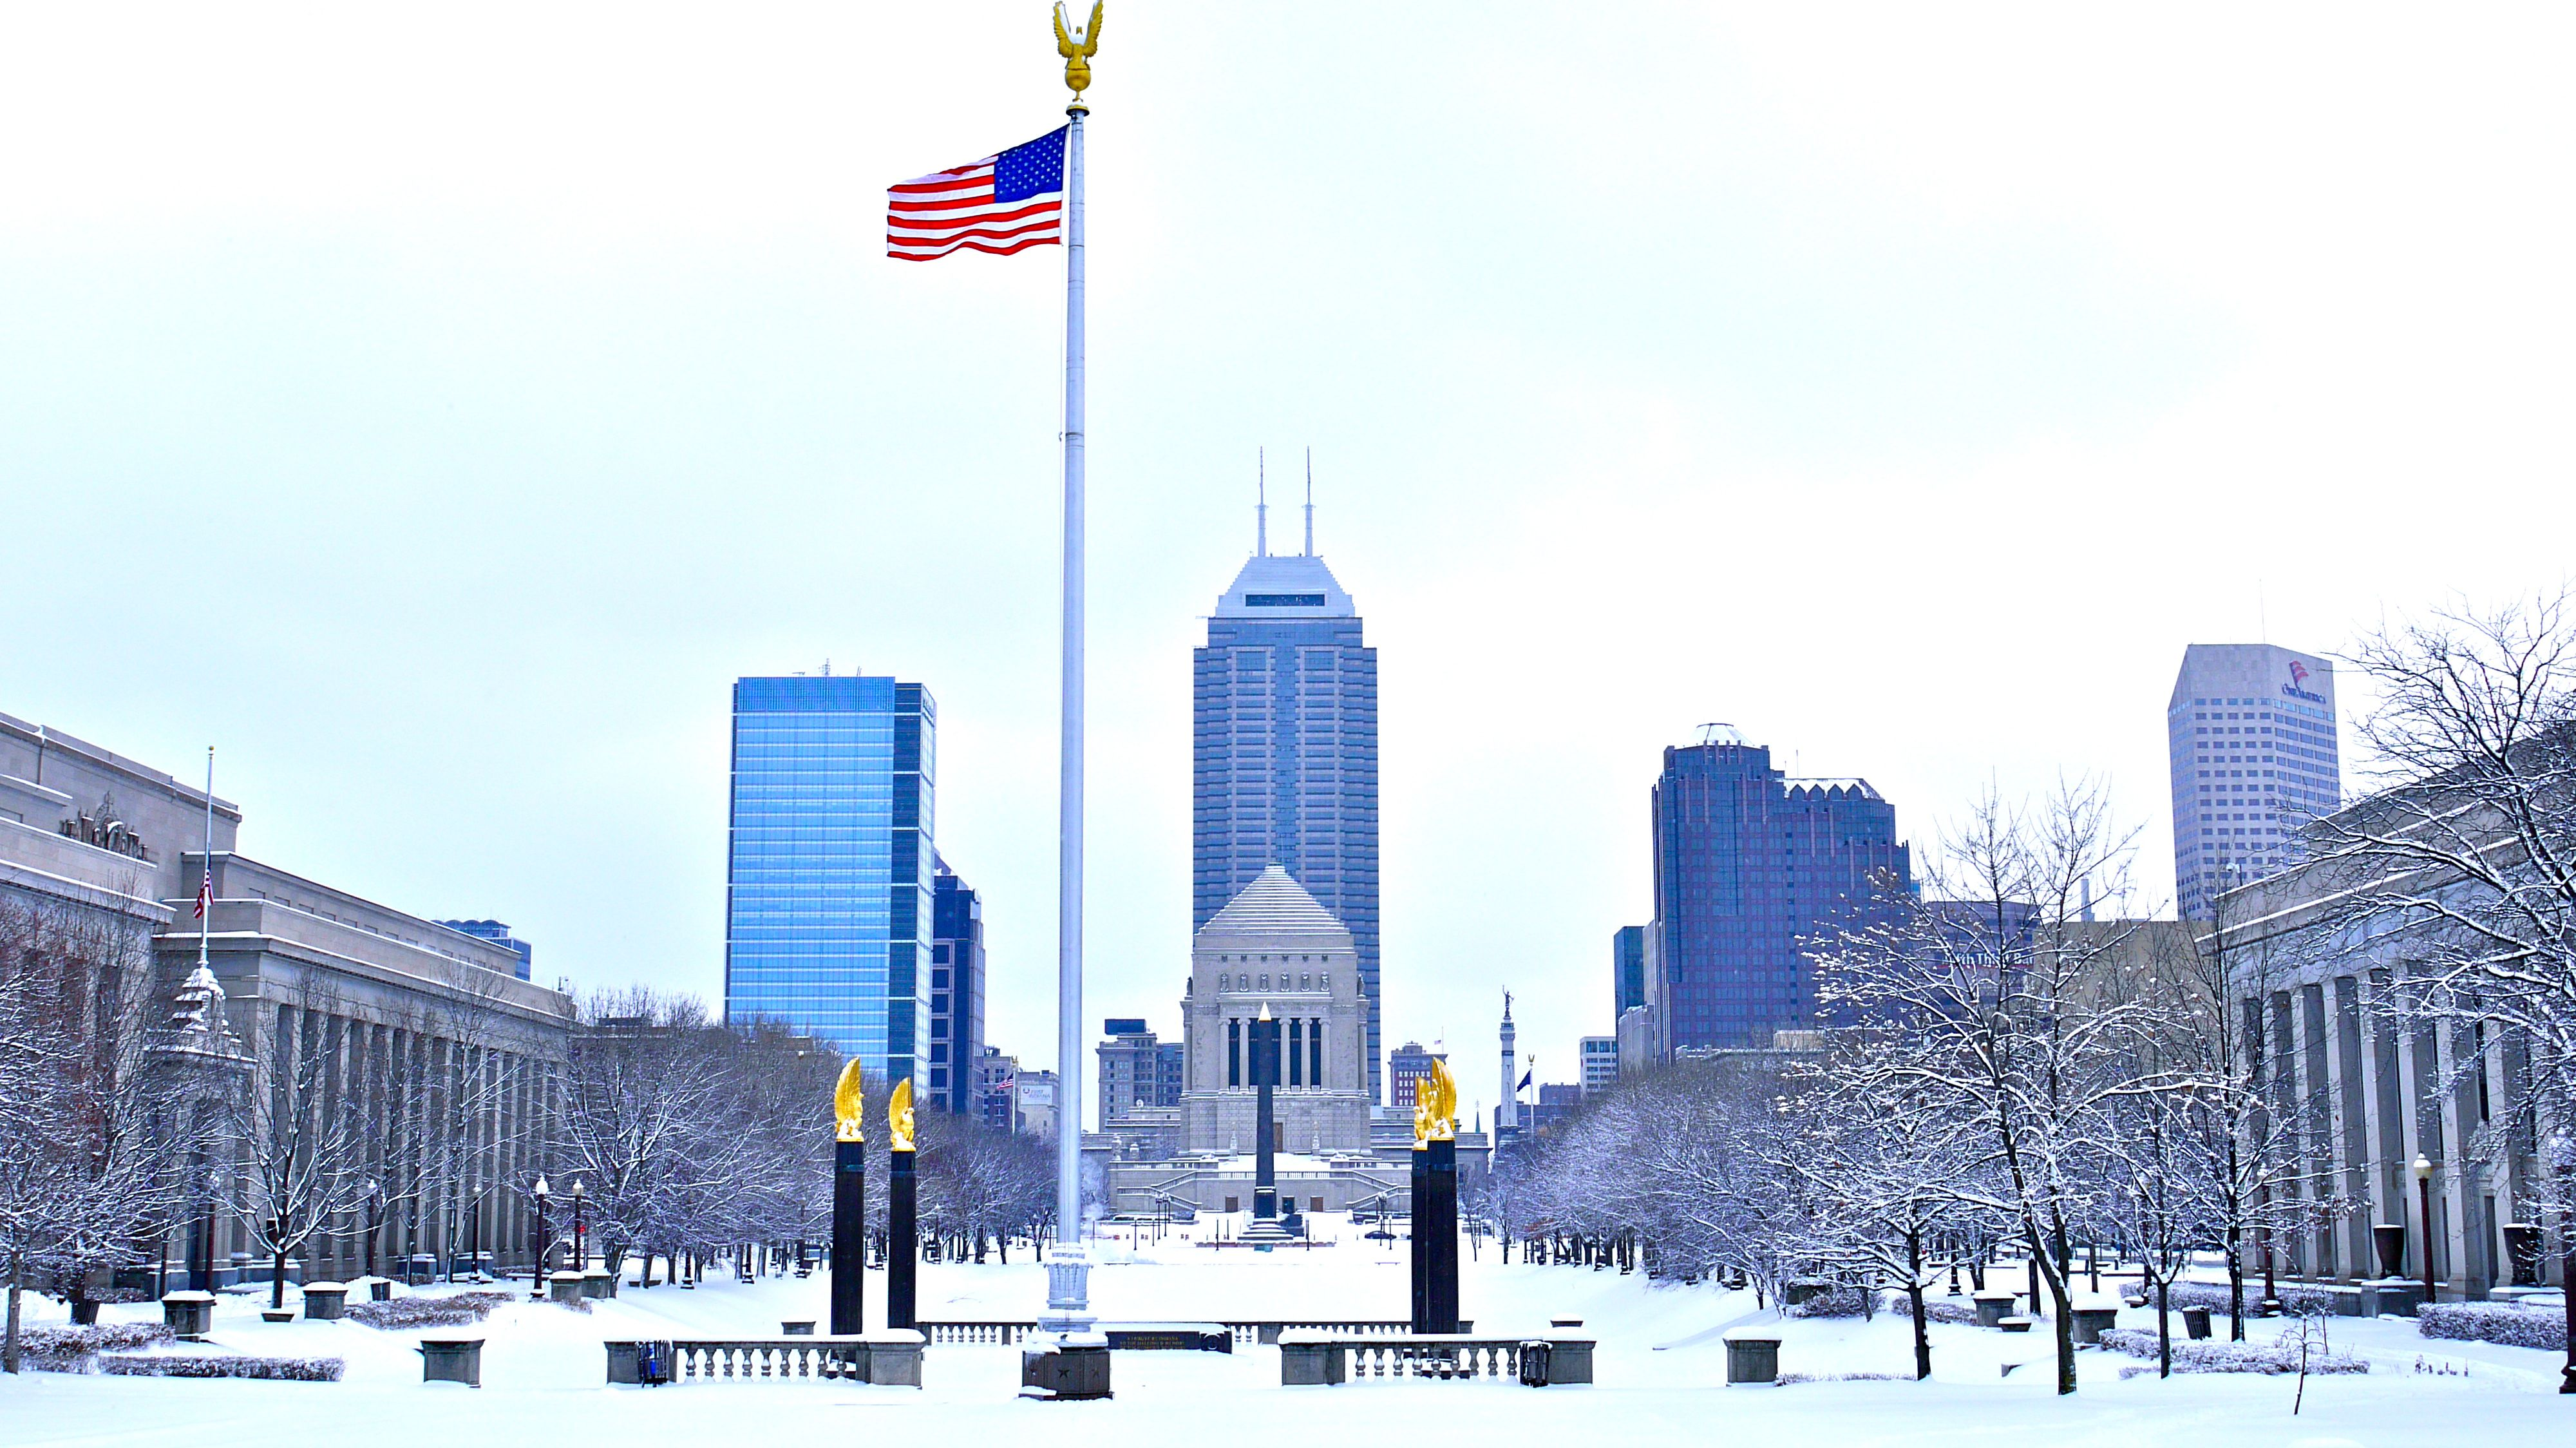 The Indianapolis Skyline Snow Coated In February